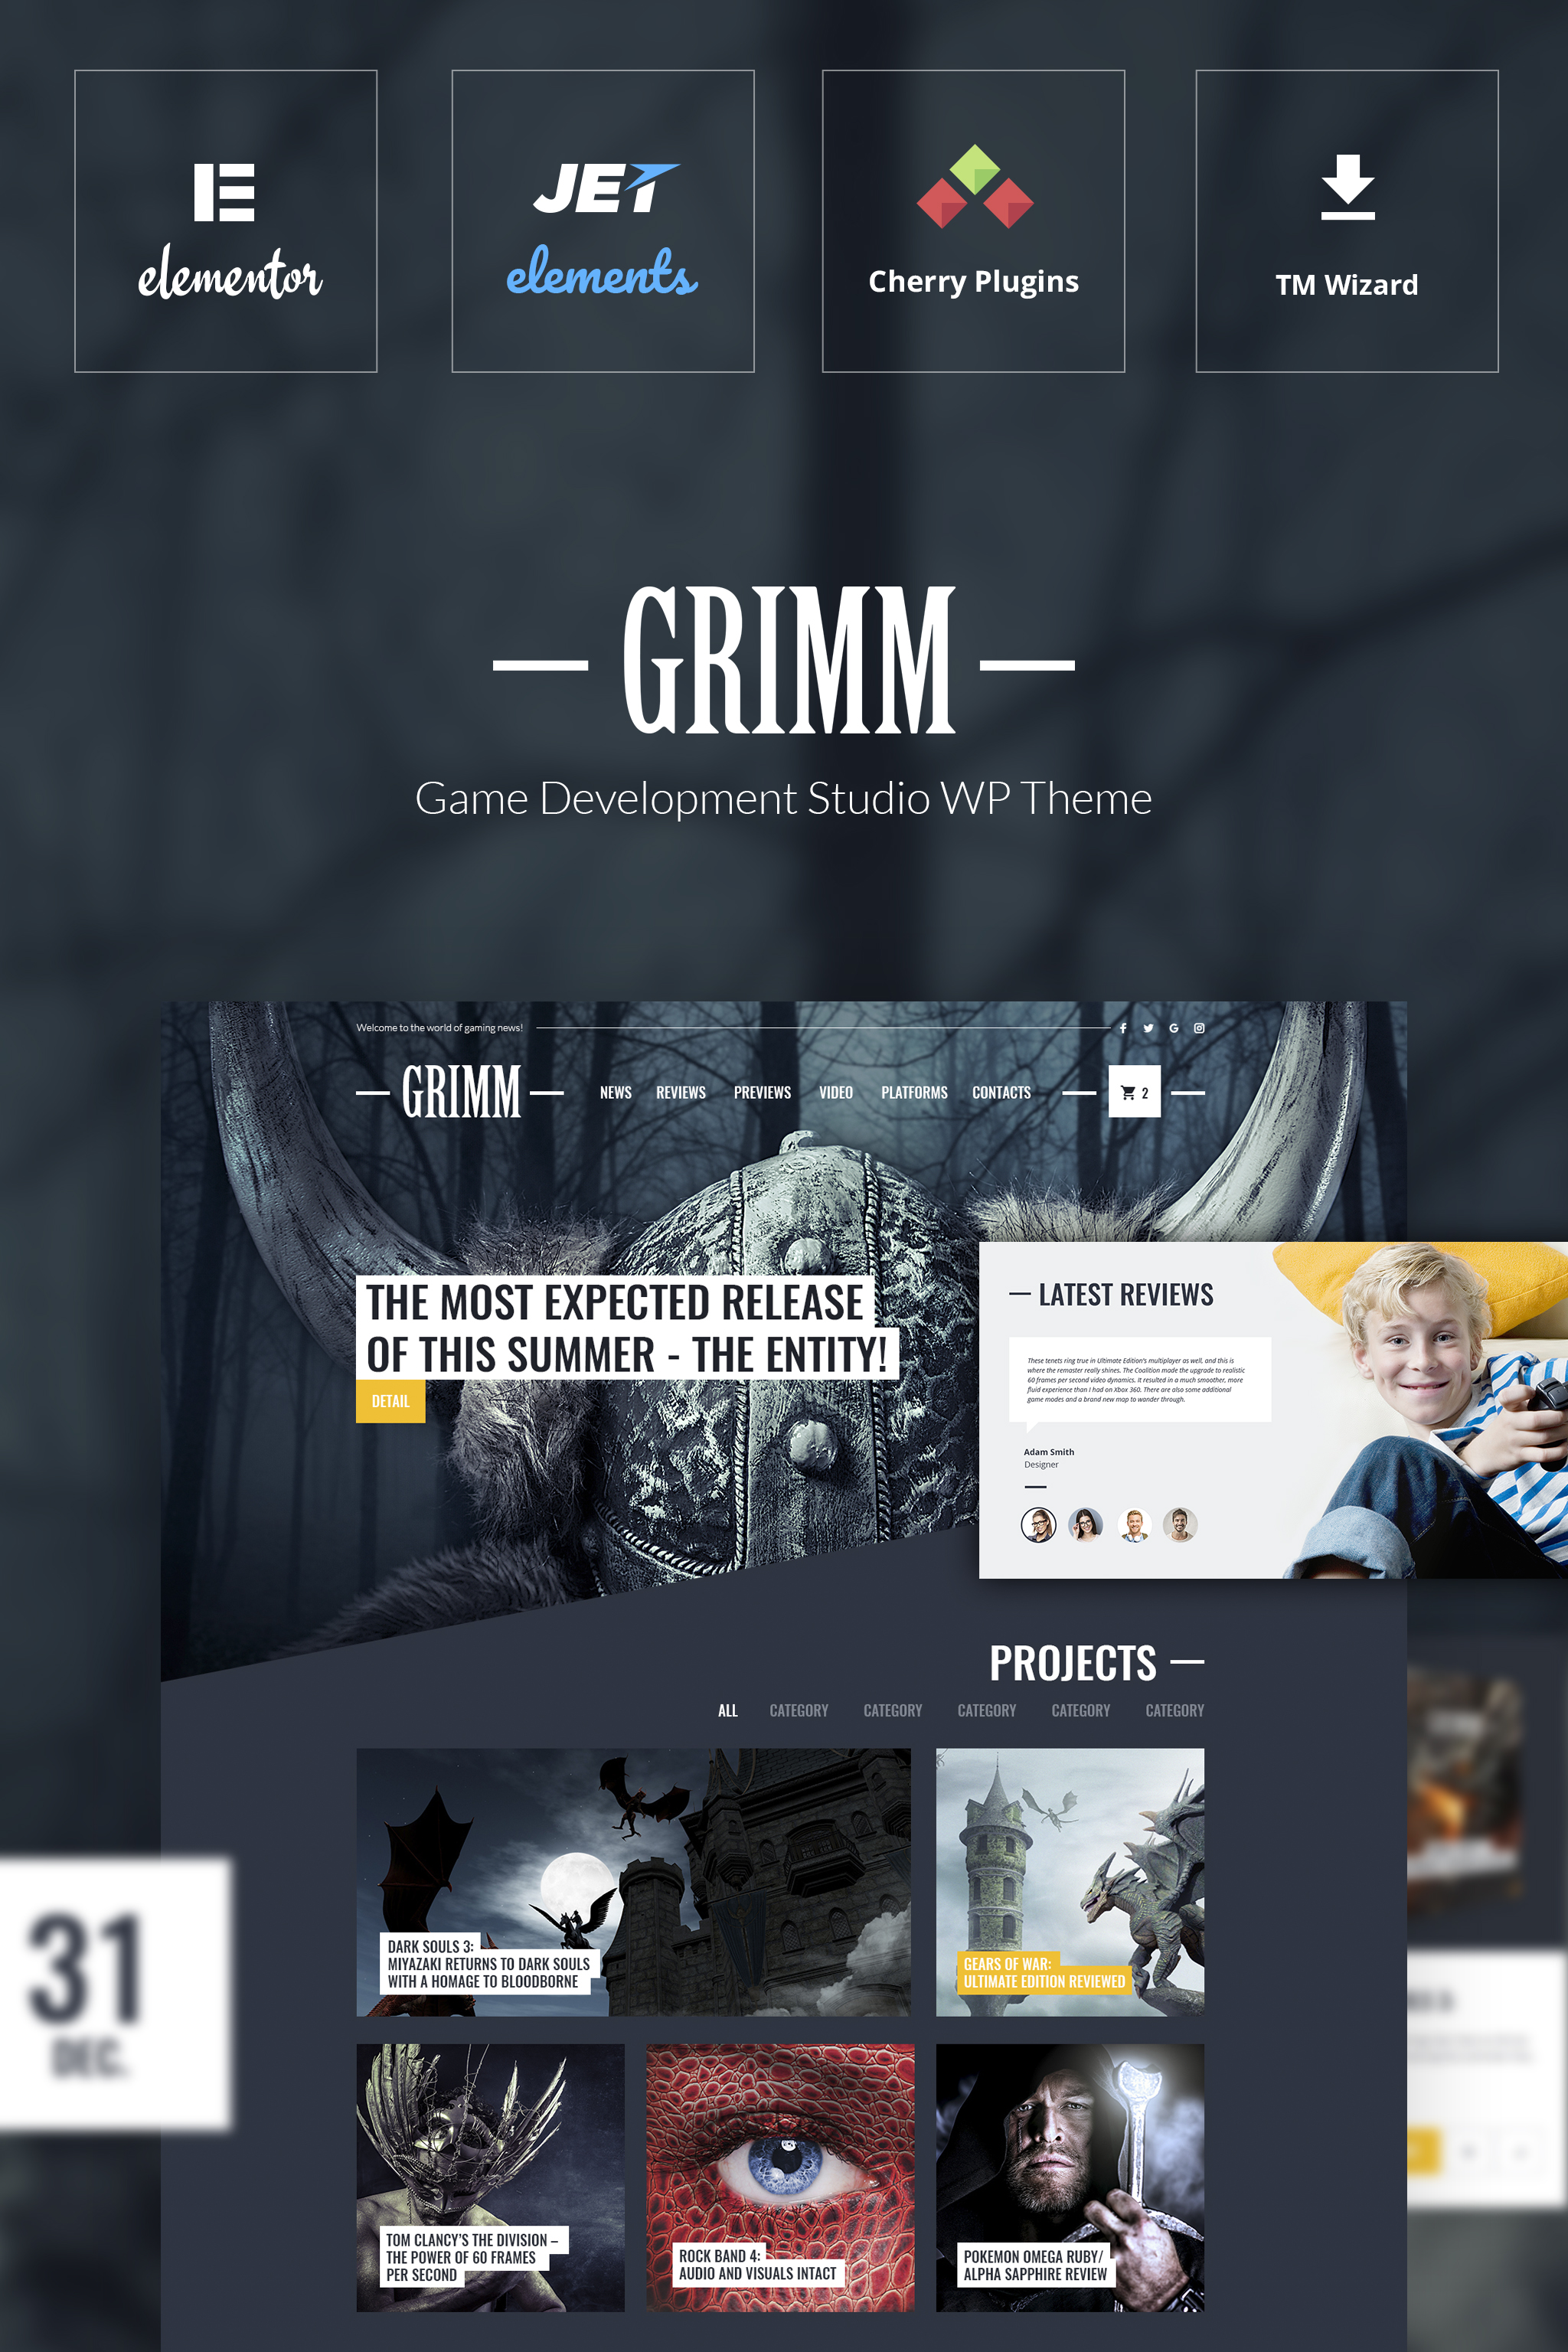 GRIMM - Game Development Studio WordPress Theme WordPress Theme